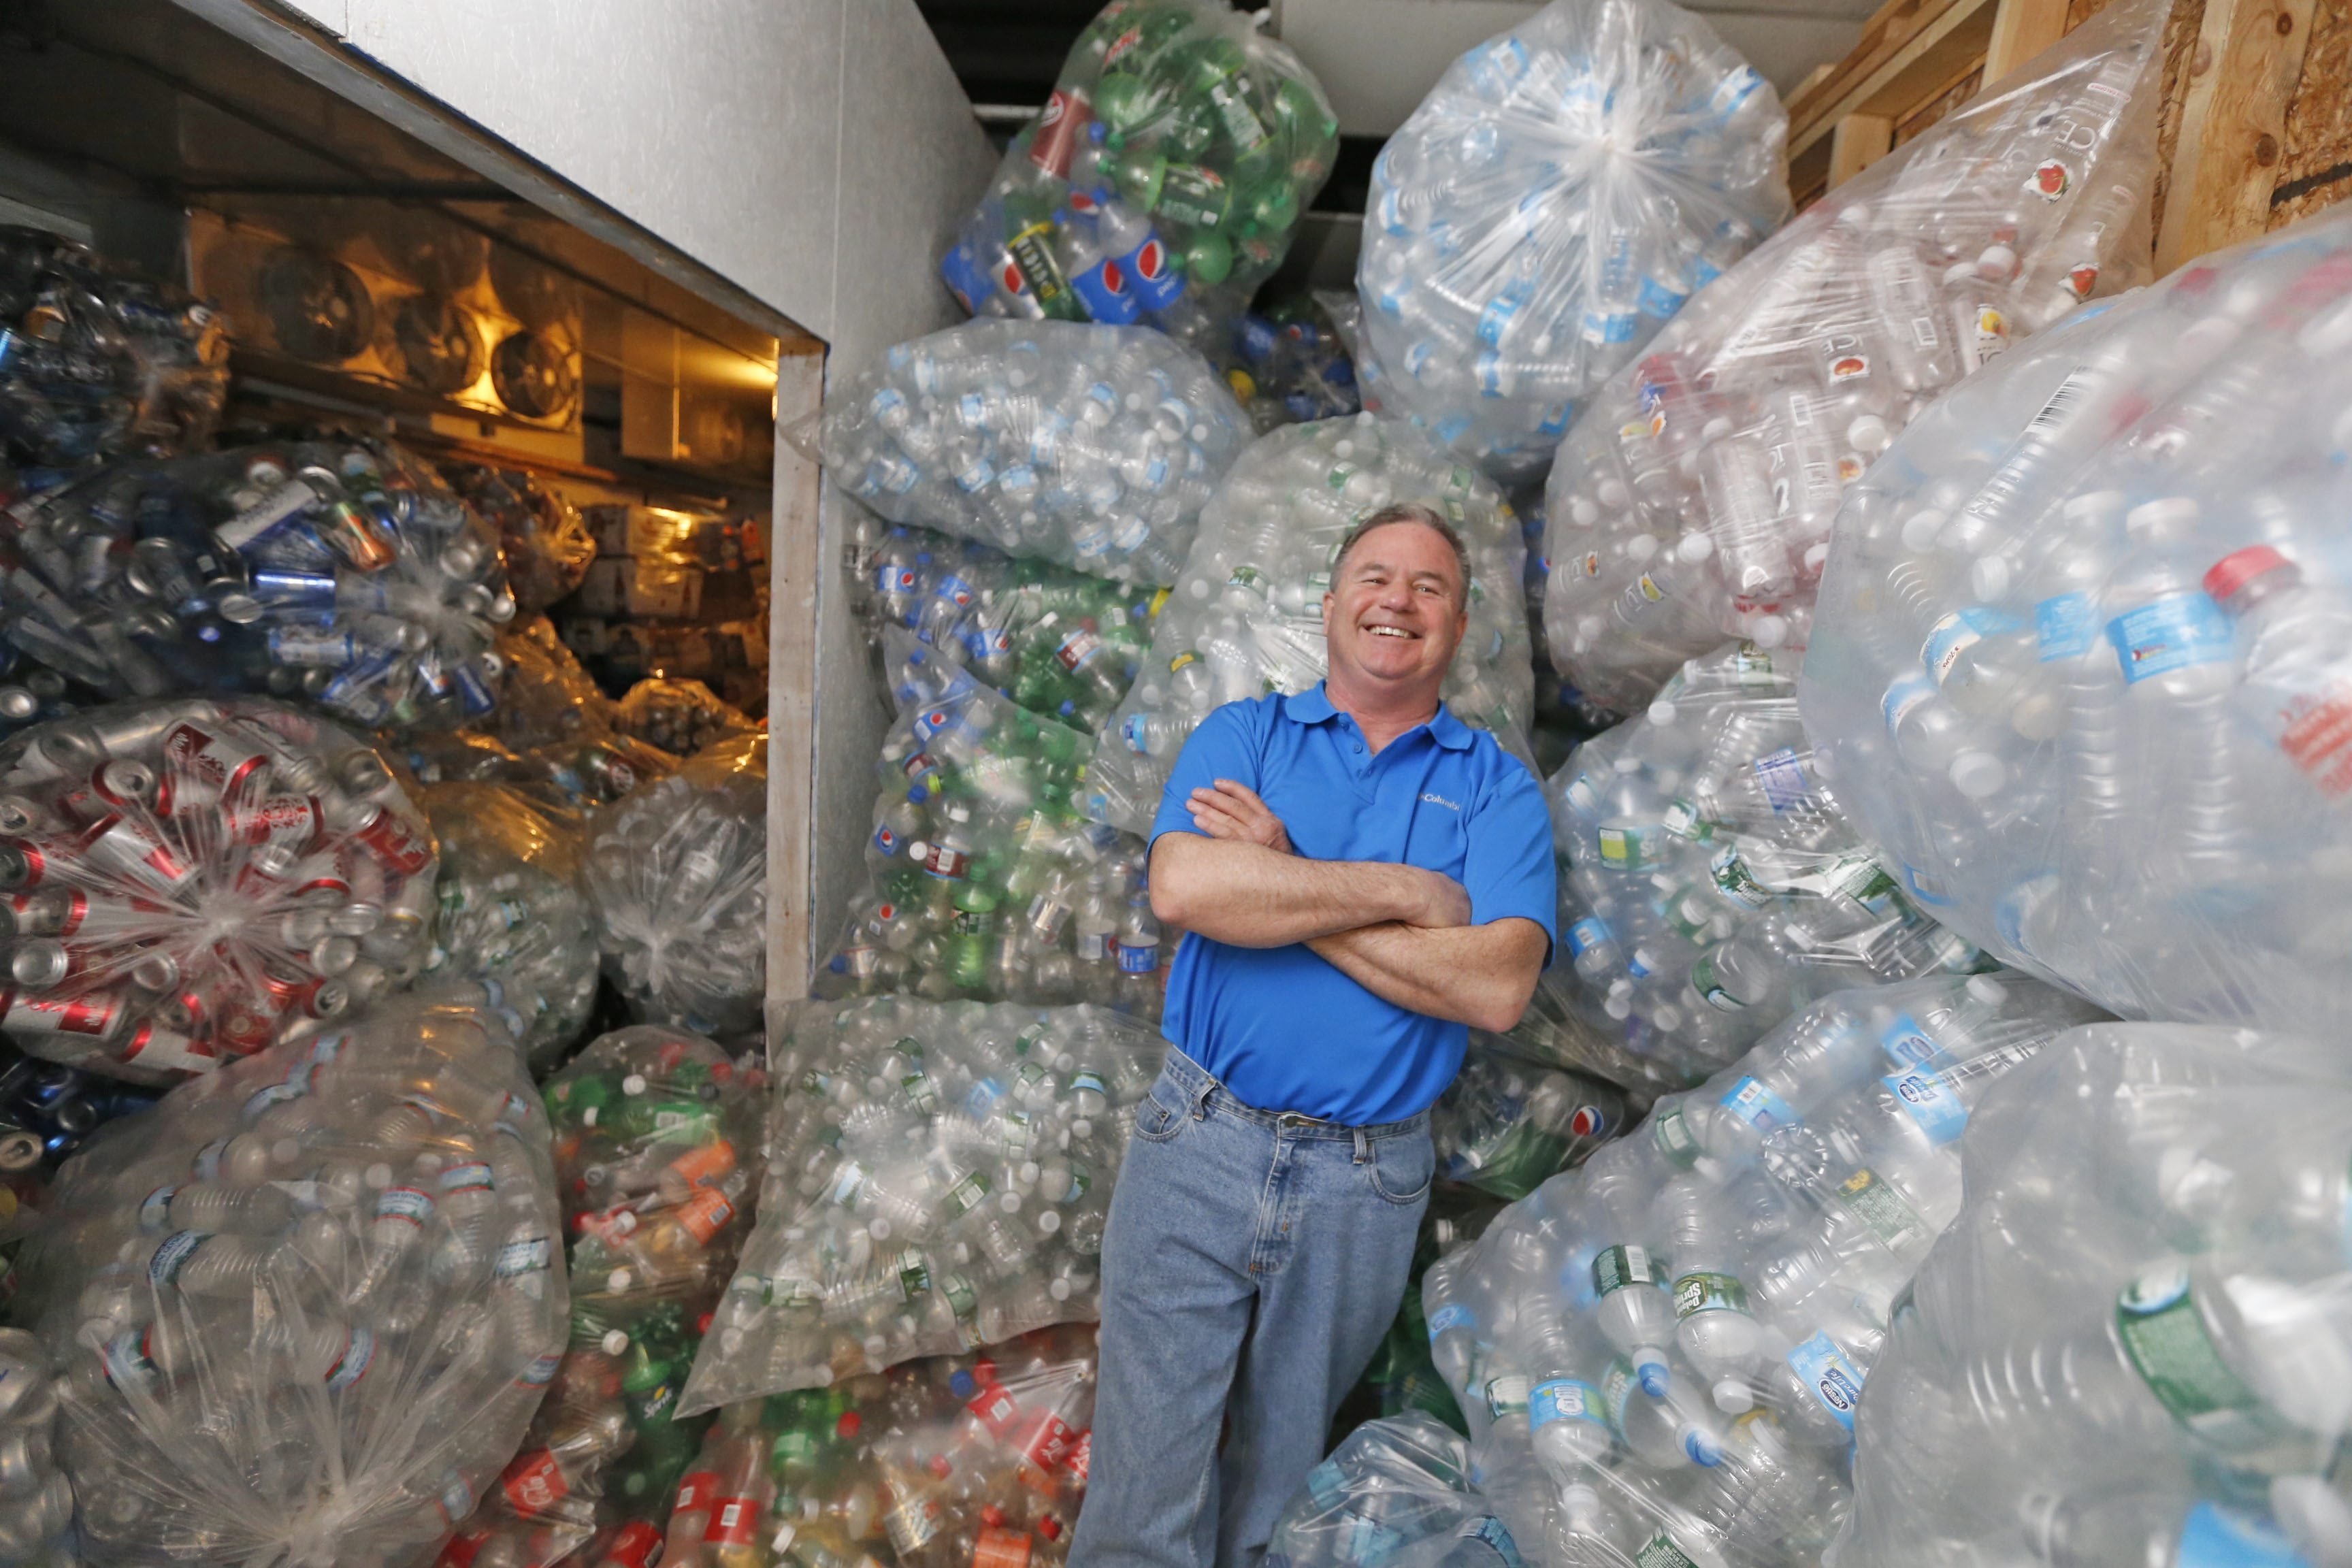 """""""We had 100 people come in last Saturday to return bottles and cans, and this is only April,"""" said Doug Adamson of The Porter Center. """"Our busy season is May to July 4."""""""